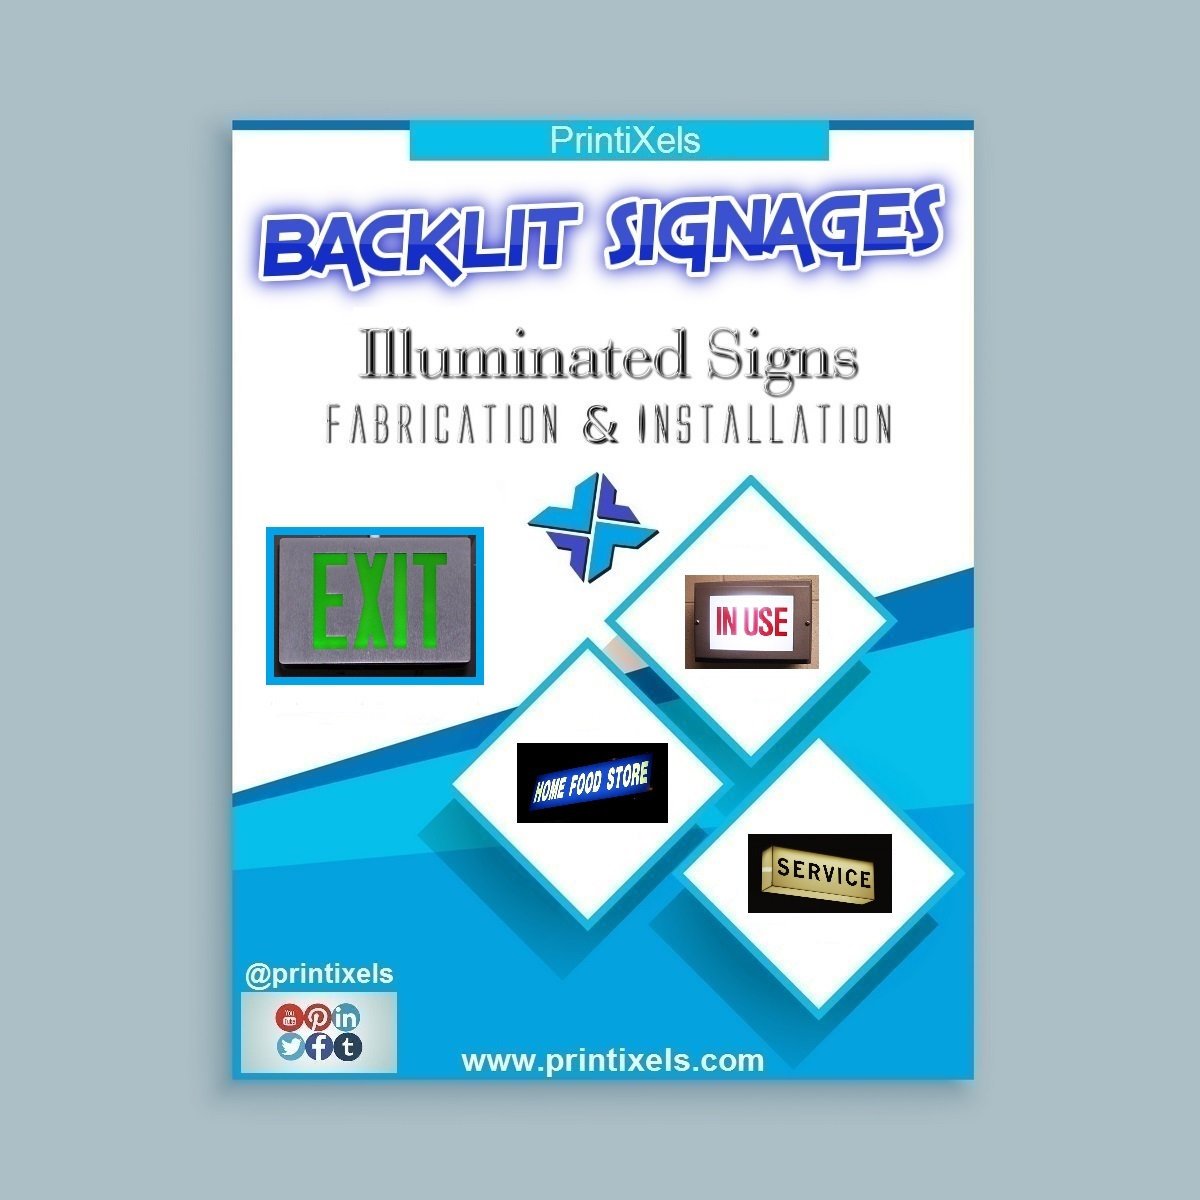 Backlit Signages, Illuminated Signs